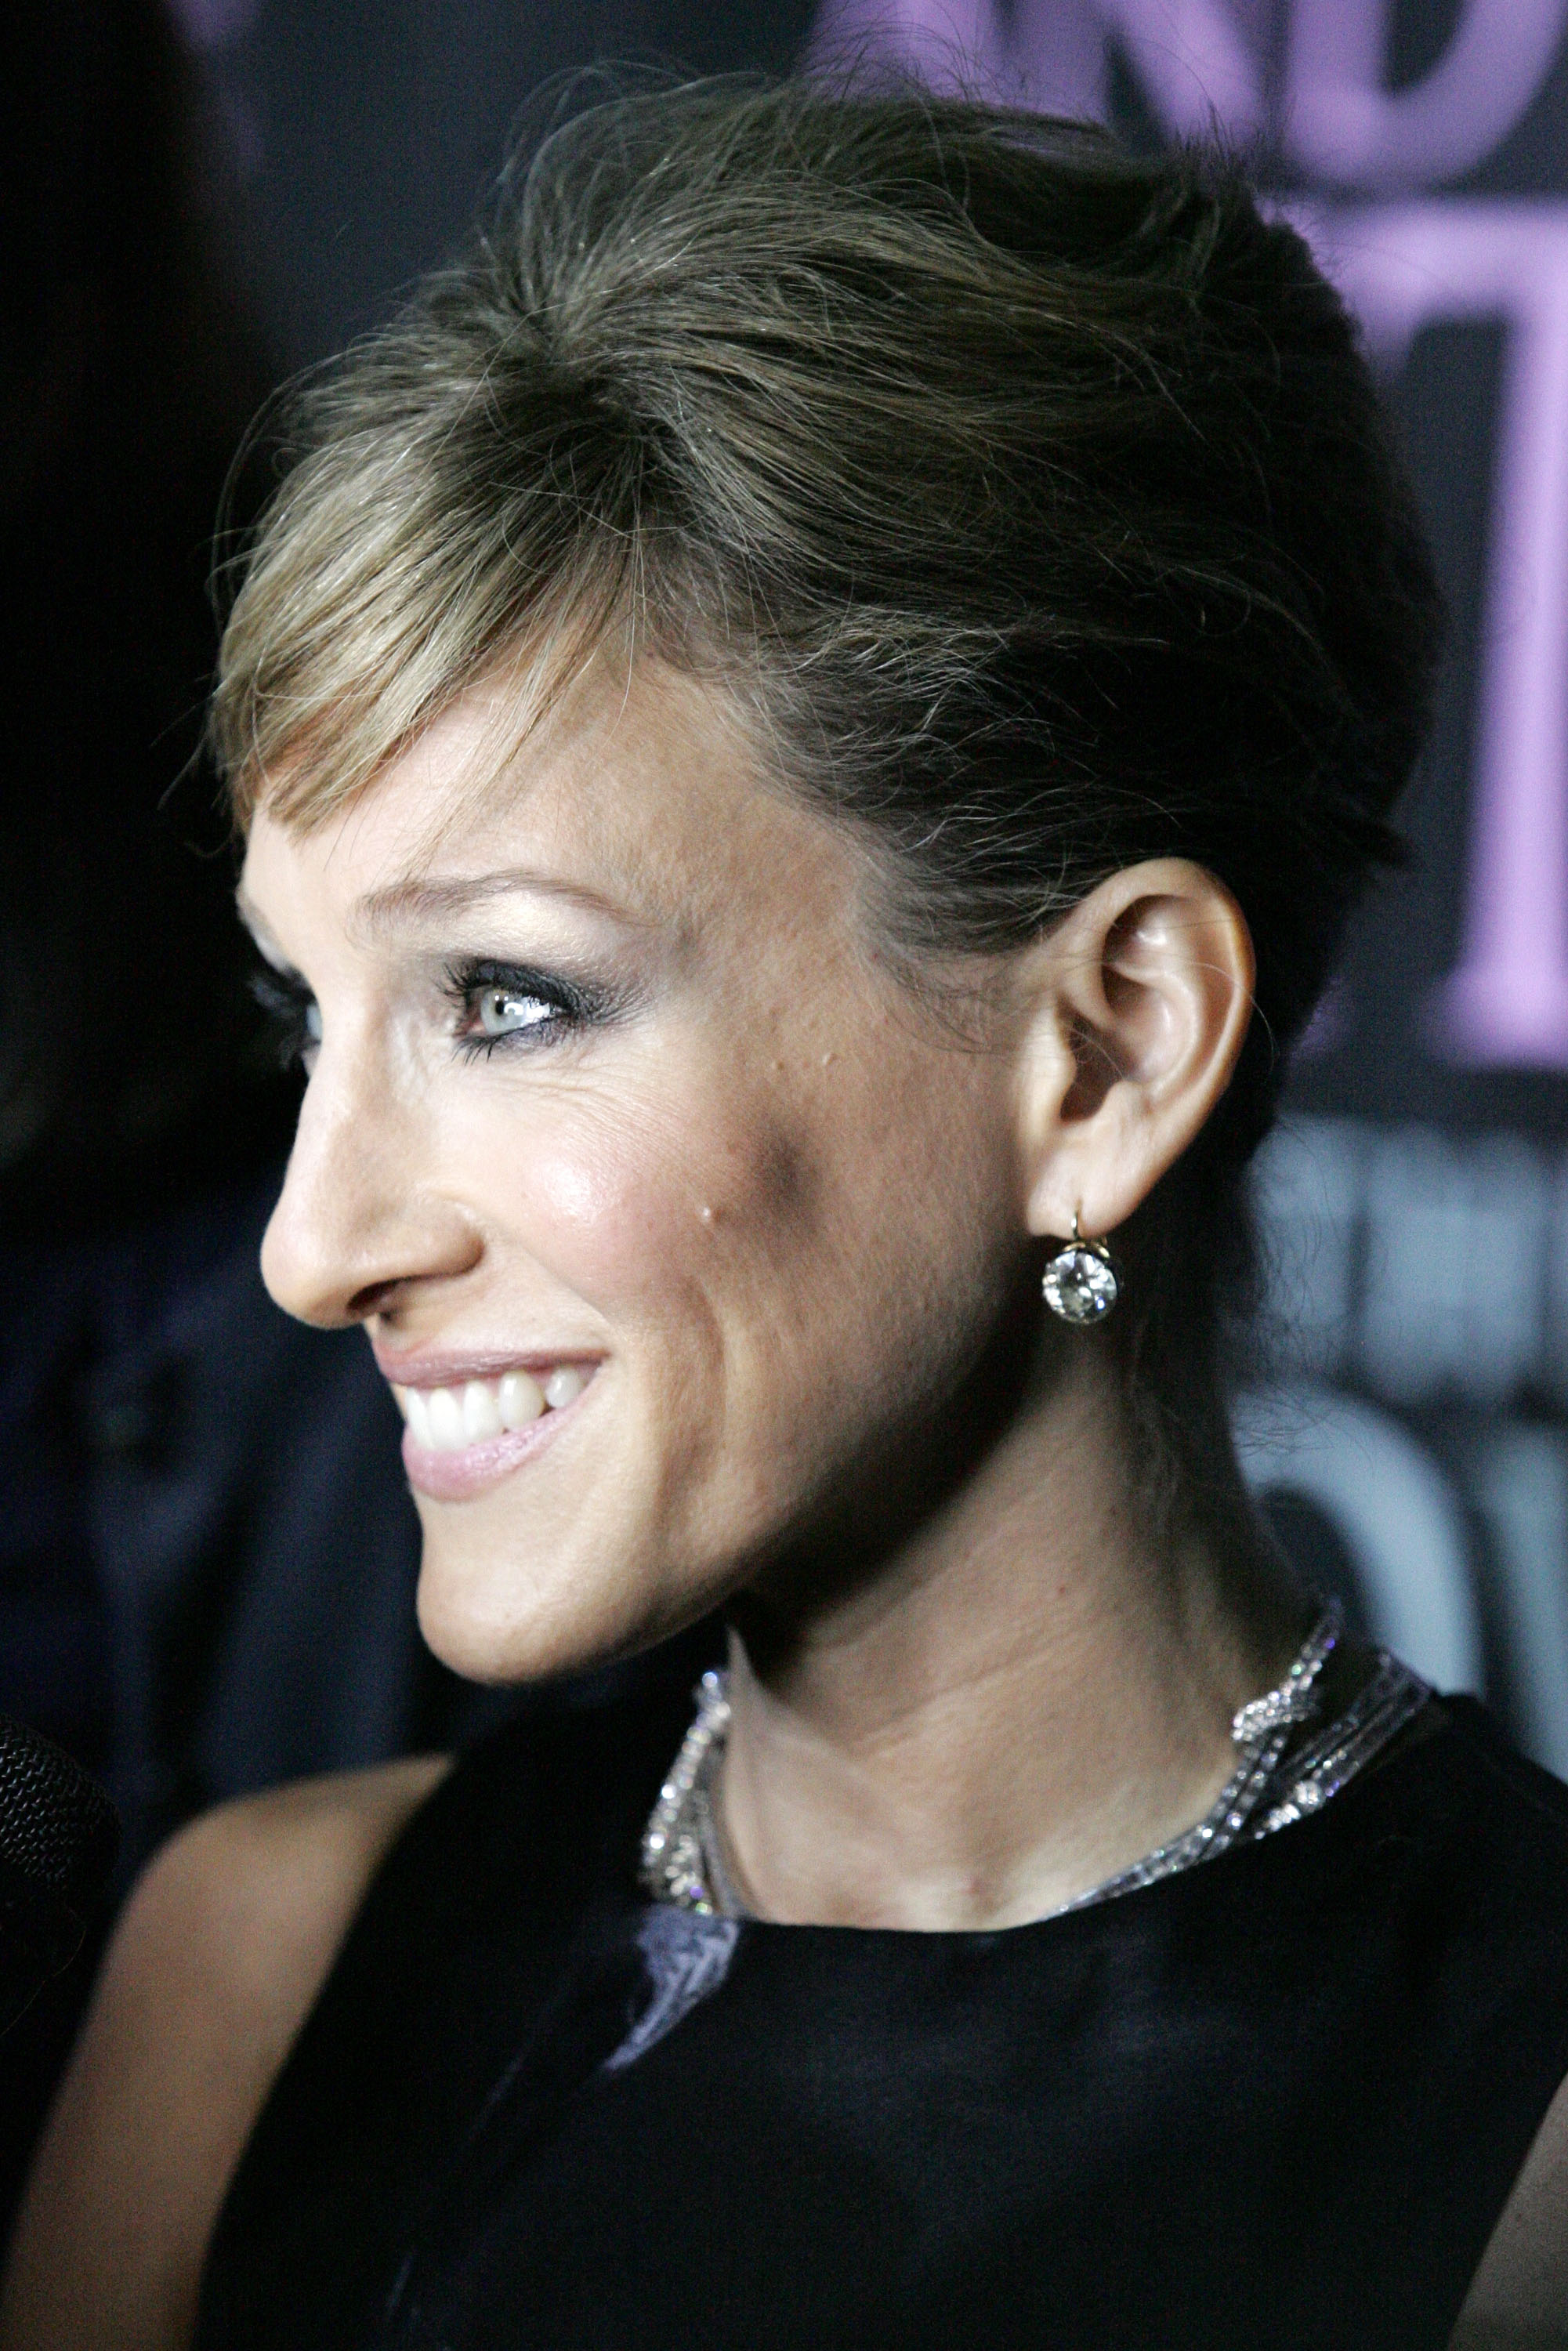 03915_Celebutopia-Sarah_Jessica_Parker-Sex_and_the_City_The_Movie_DVD_launch_in_New_York_City-08_122_125lo.jpg